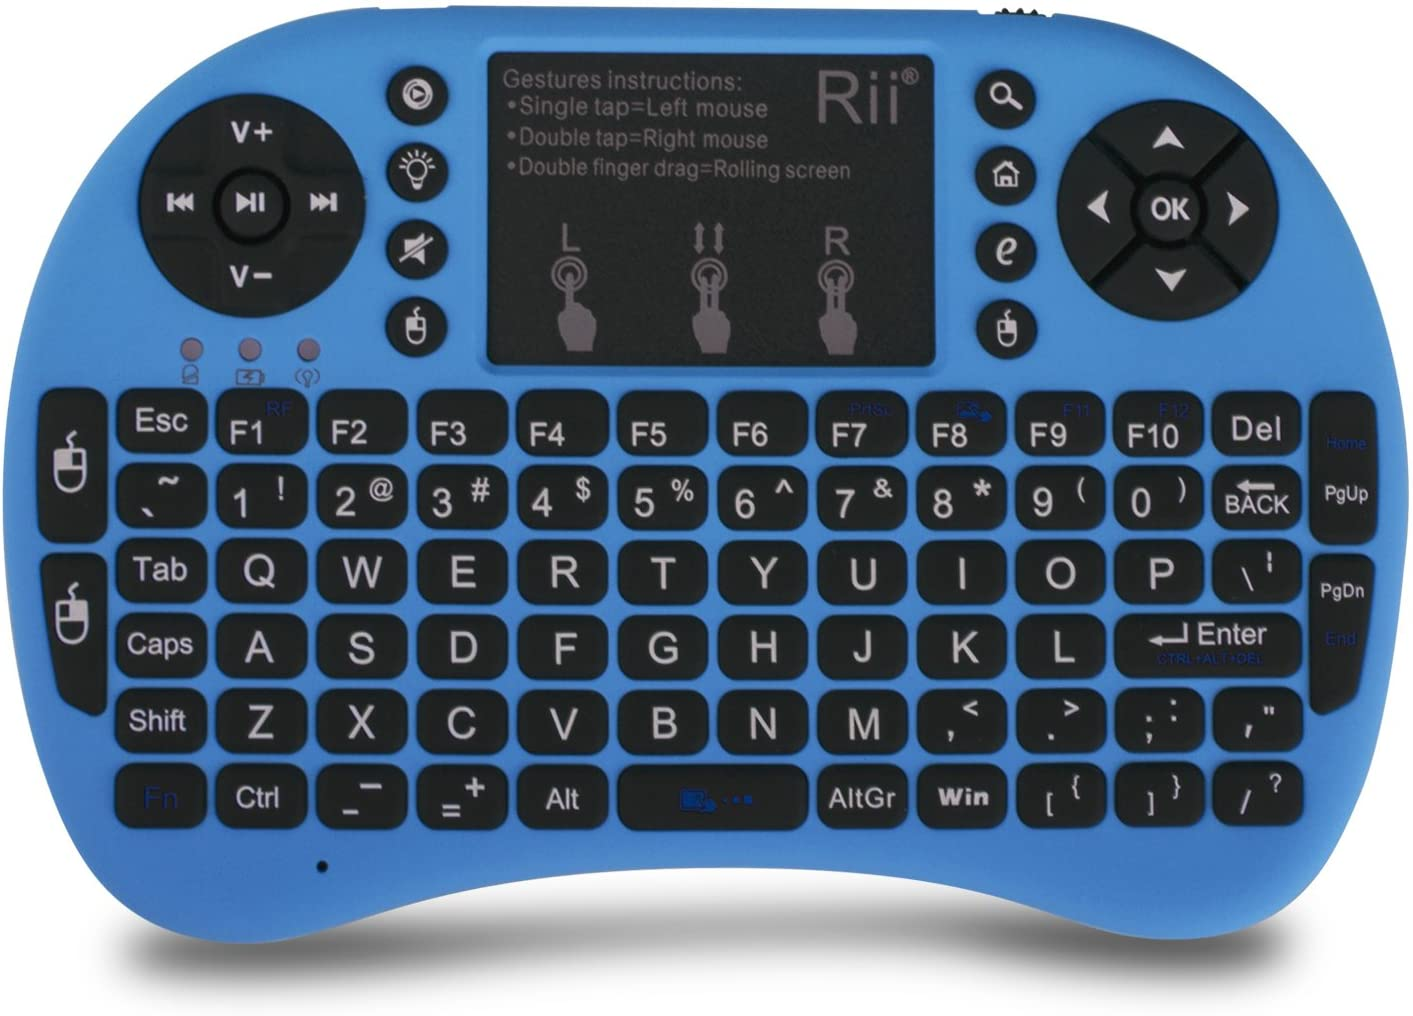 (Upgraded) Rii 2.4GHz Mini Wireless Keyboard with Touchpad&QWERTY Keyboard, Backlit Portable Keyboard Wireless with Remote Control for Laptop/PC/Notebooks/Windows/Mac/TV/Xbox/PS3.(i8+ Blue)